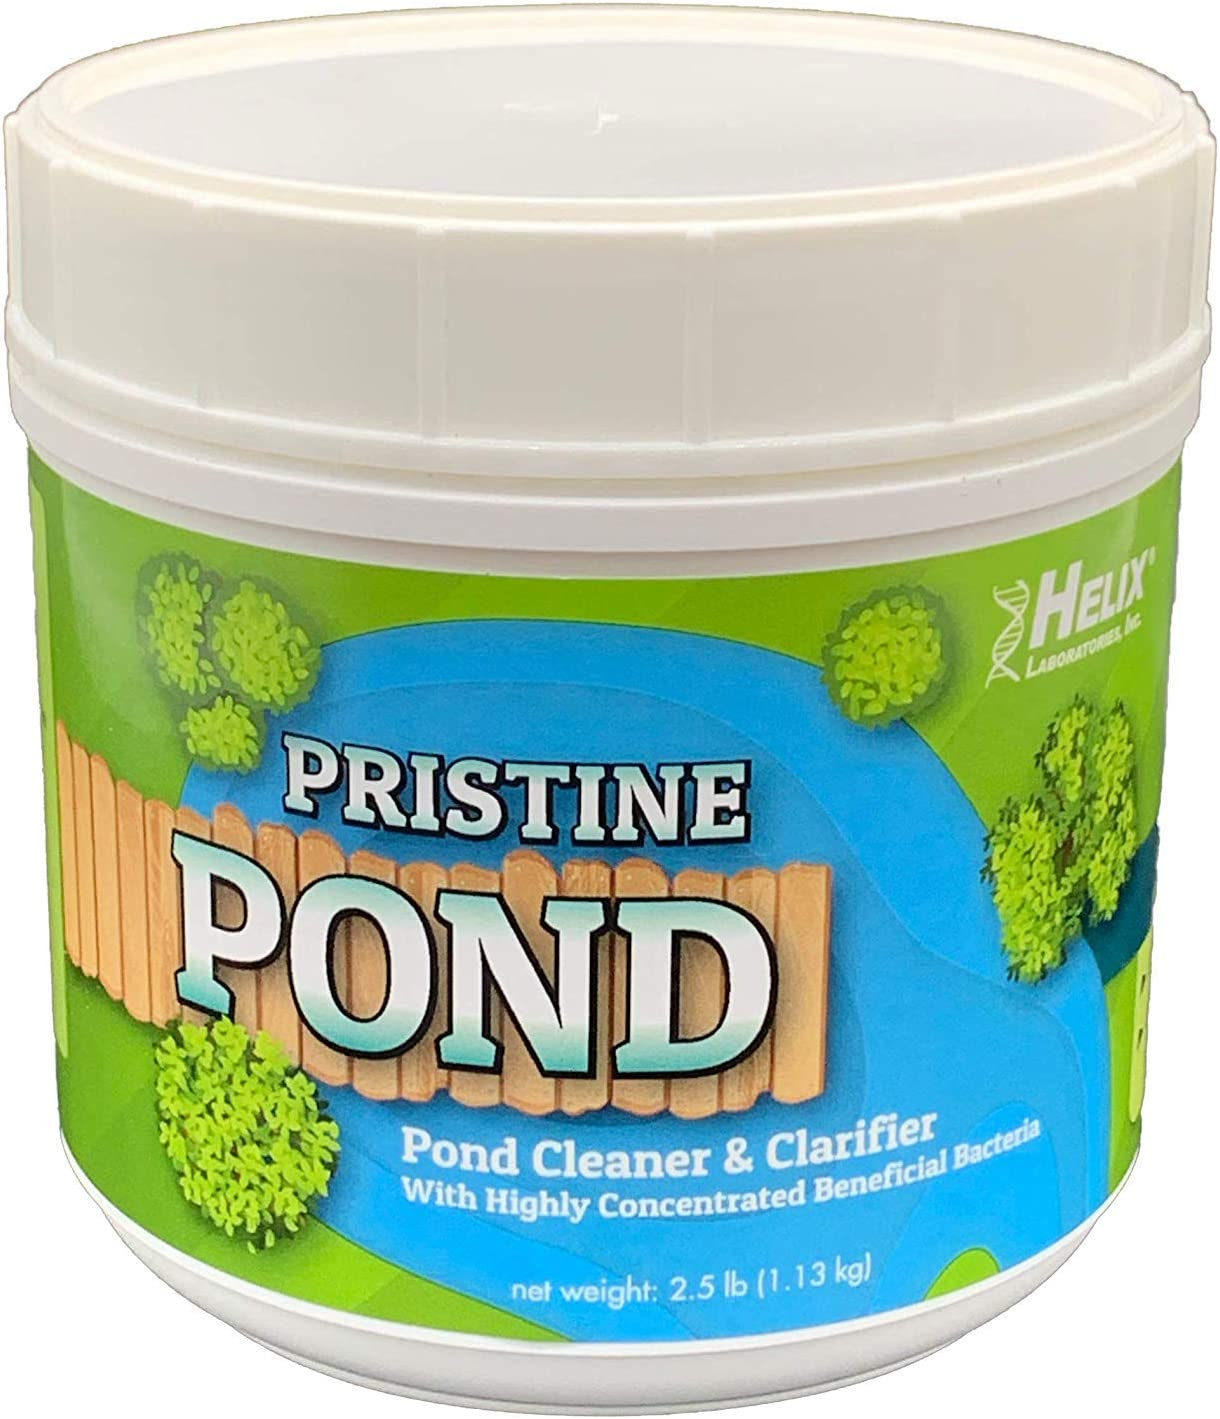 Pristine Max 66% OFF Pond Popular product Cleaner and Clarifier Highly Ben Concentrated with